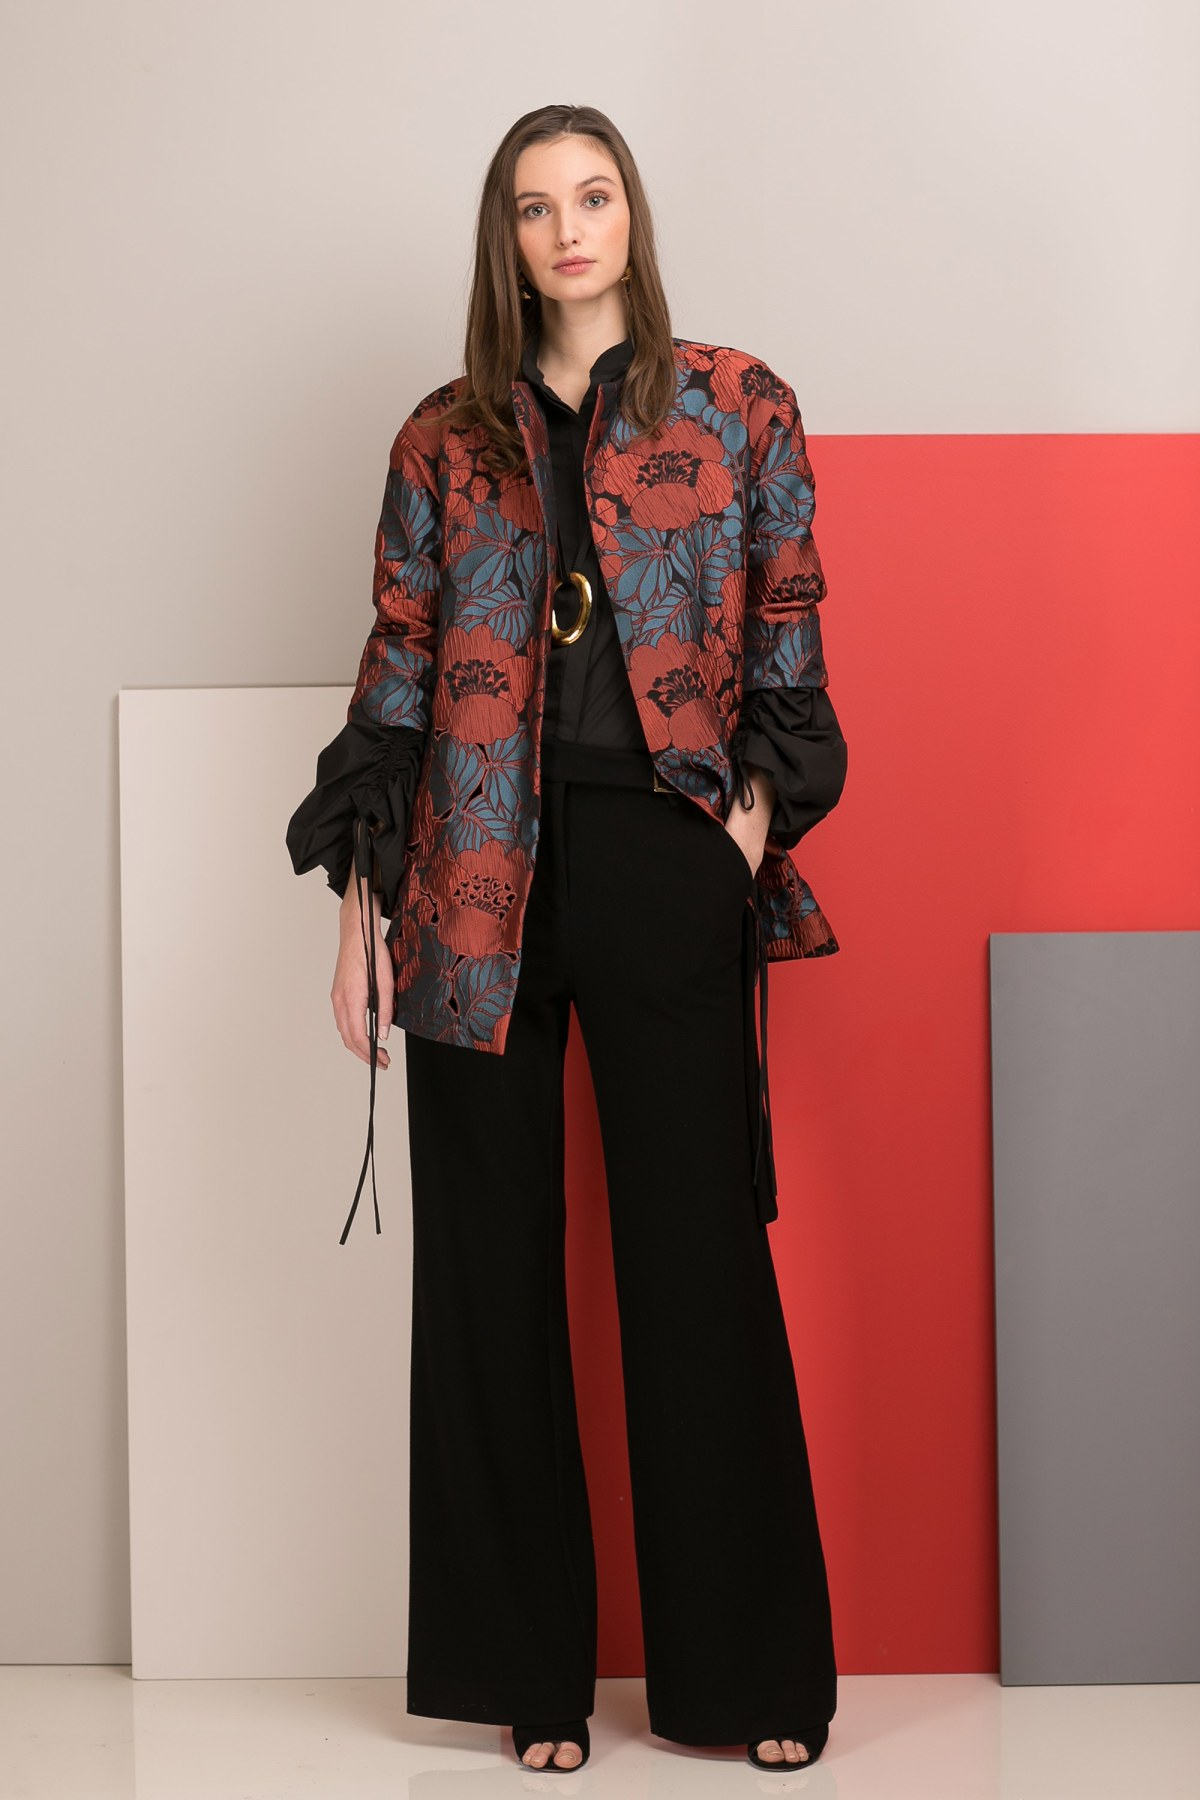 josie-natori-pre-fall-2017-fashion-show-the-impression-12